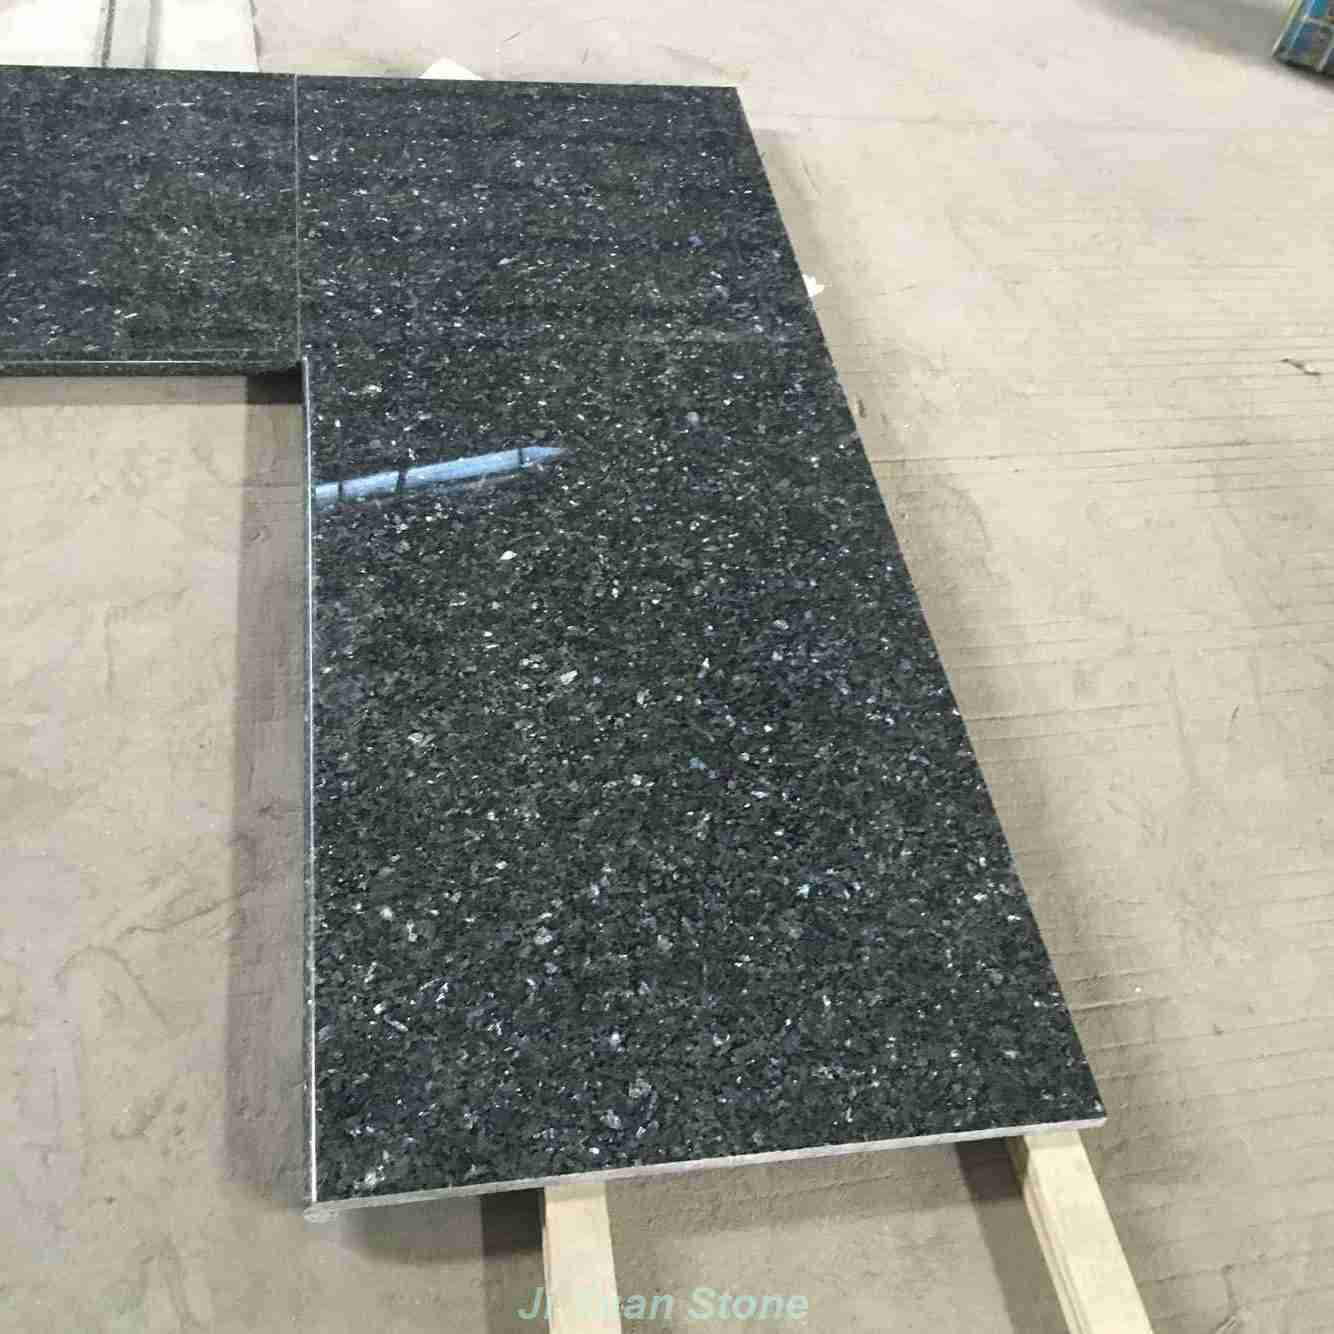 White and blue granite countertops,blue pearl granite floor tiles,blue pearl tile backsplash,blue pearl countertop kitchen,blue eyes granite slab,royal blue granite